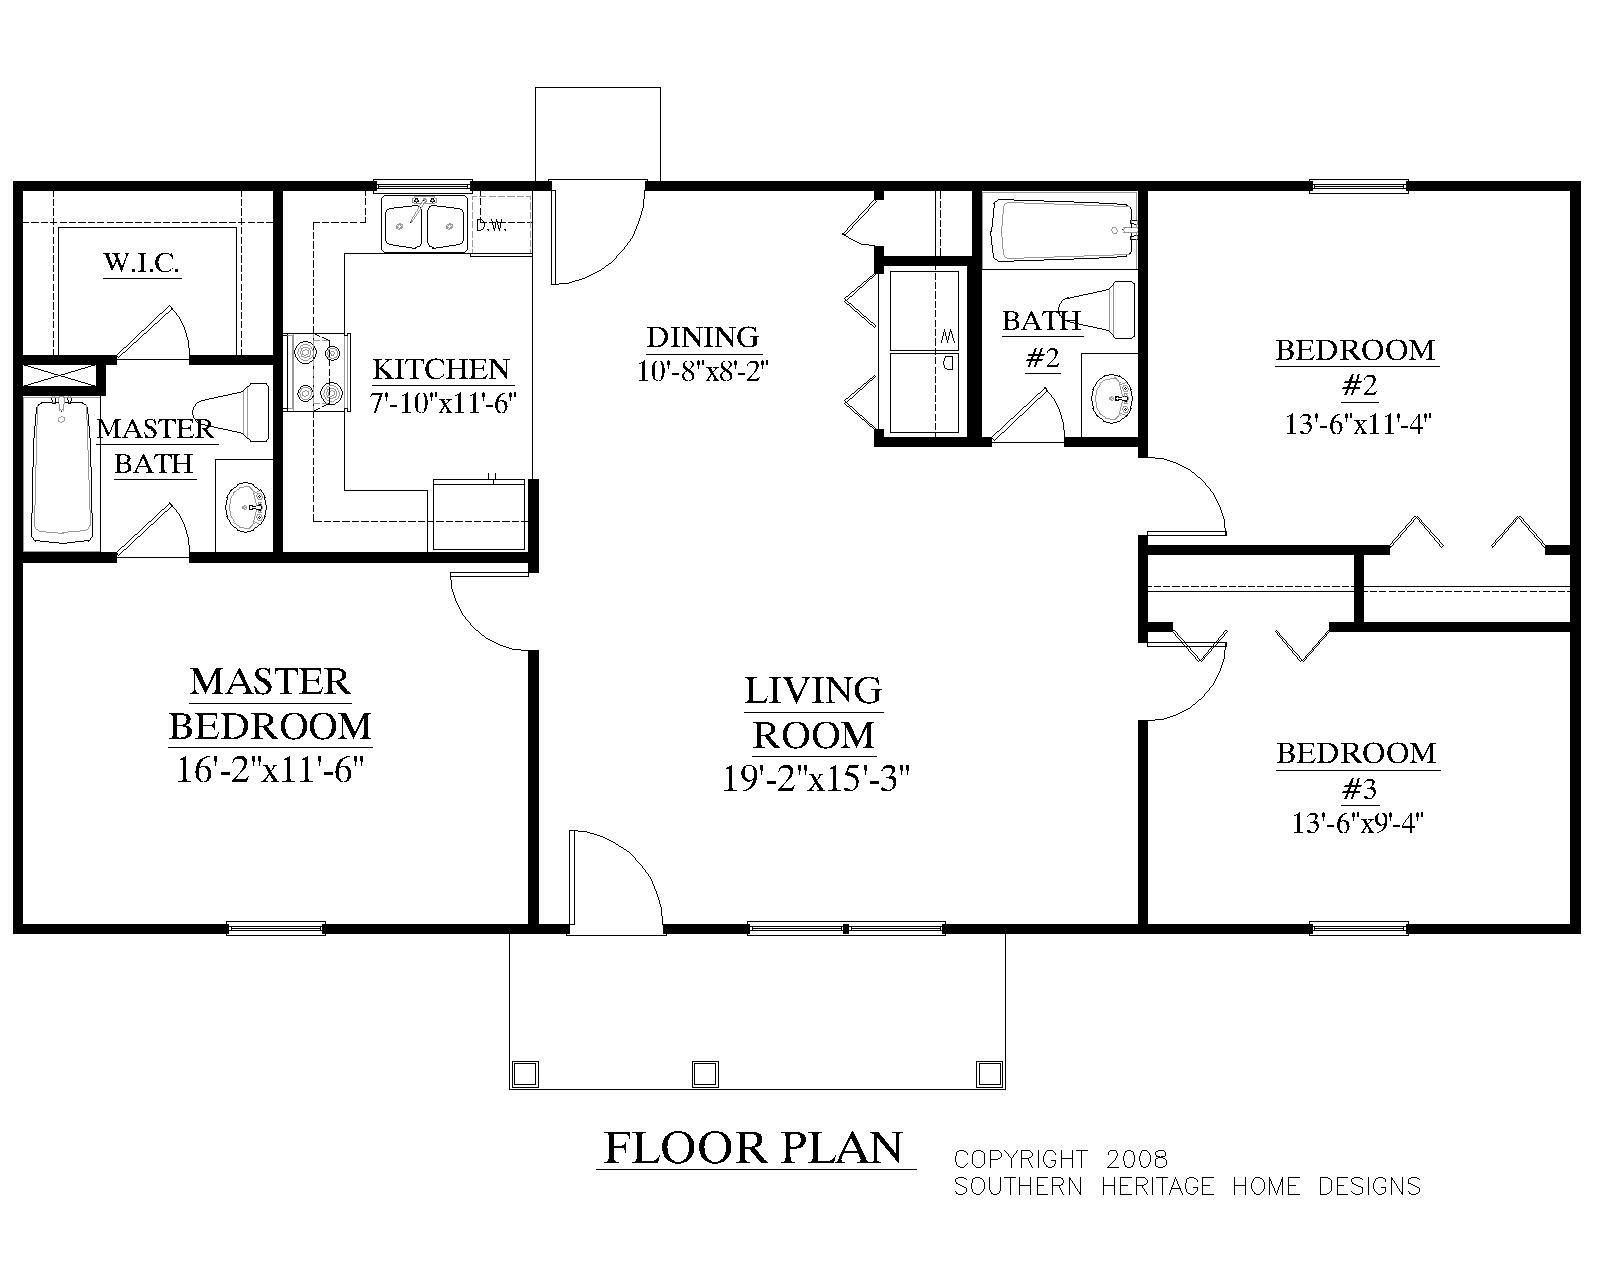 House Plan 1200 A The Korey A Floor Plan Ranch House Plans 20x40 House Plans House Plans One Story